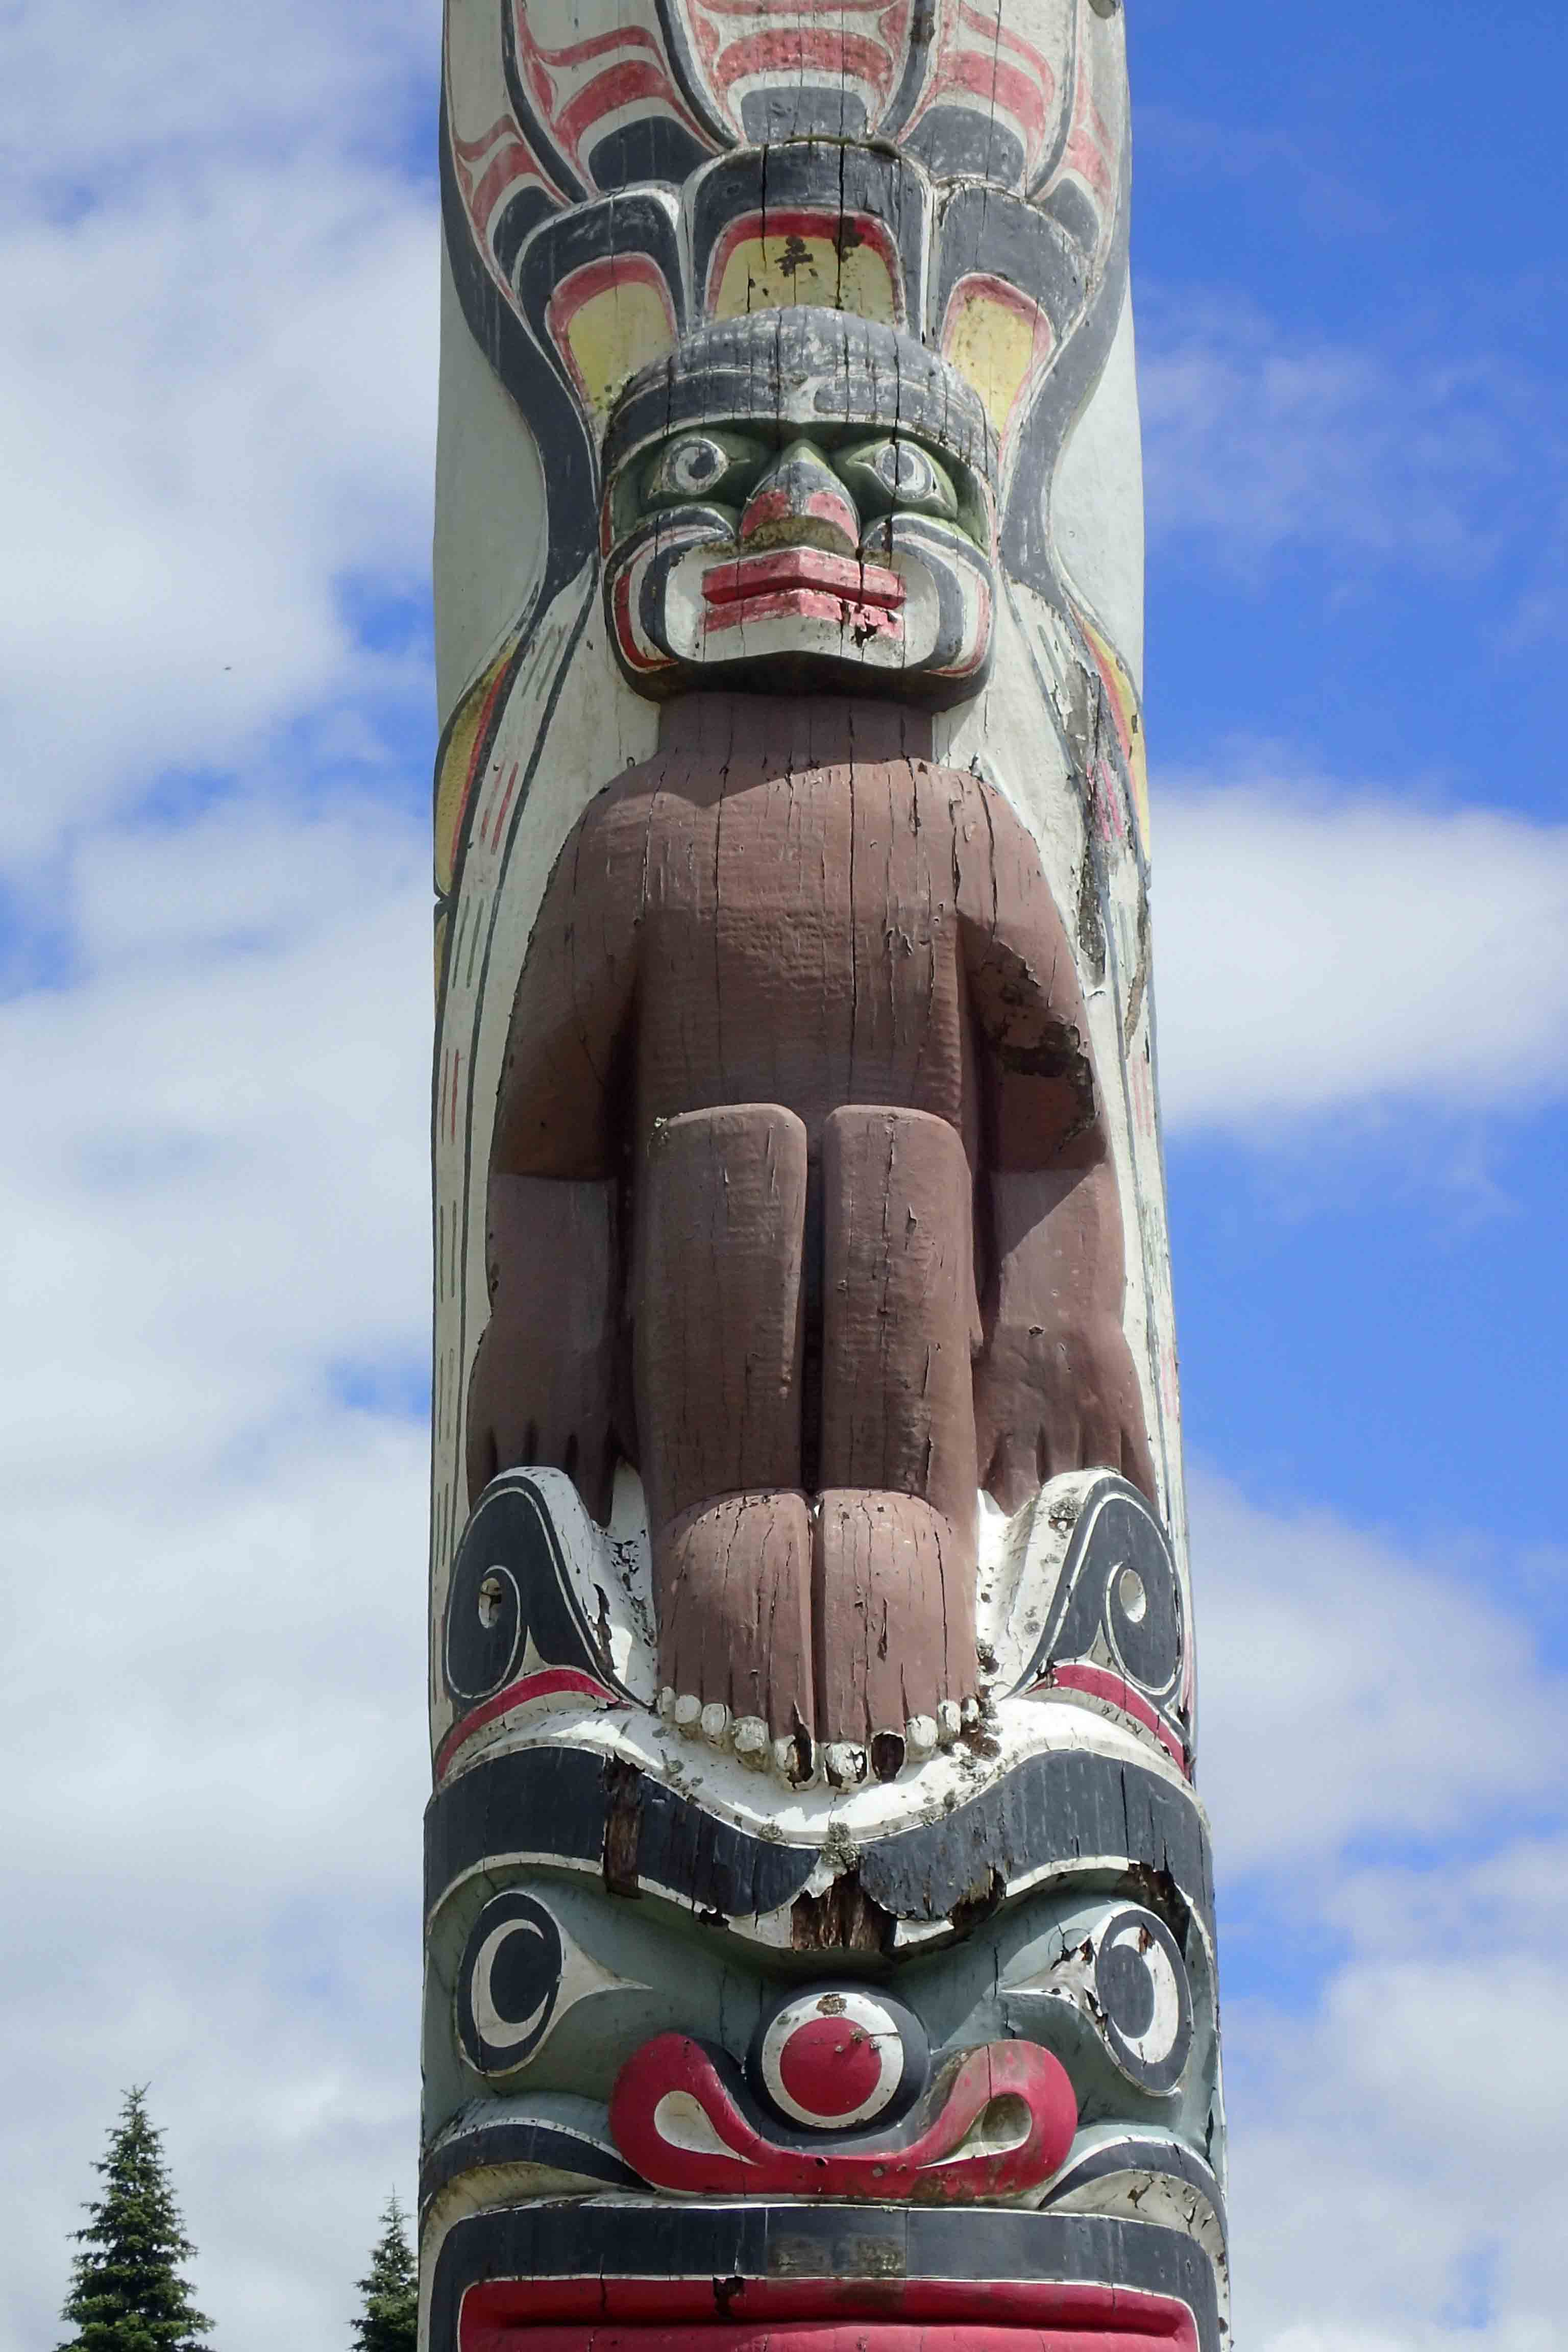 Halibut Man, on Totem Pole at Virginia Water. 100 feet high, the 600 year old log of Western Red Cedar was carved by Kwakiutis and erected in 1958 to mark the centenary of the establishment of British Columbia as a Crown Colony